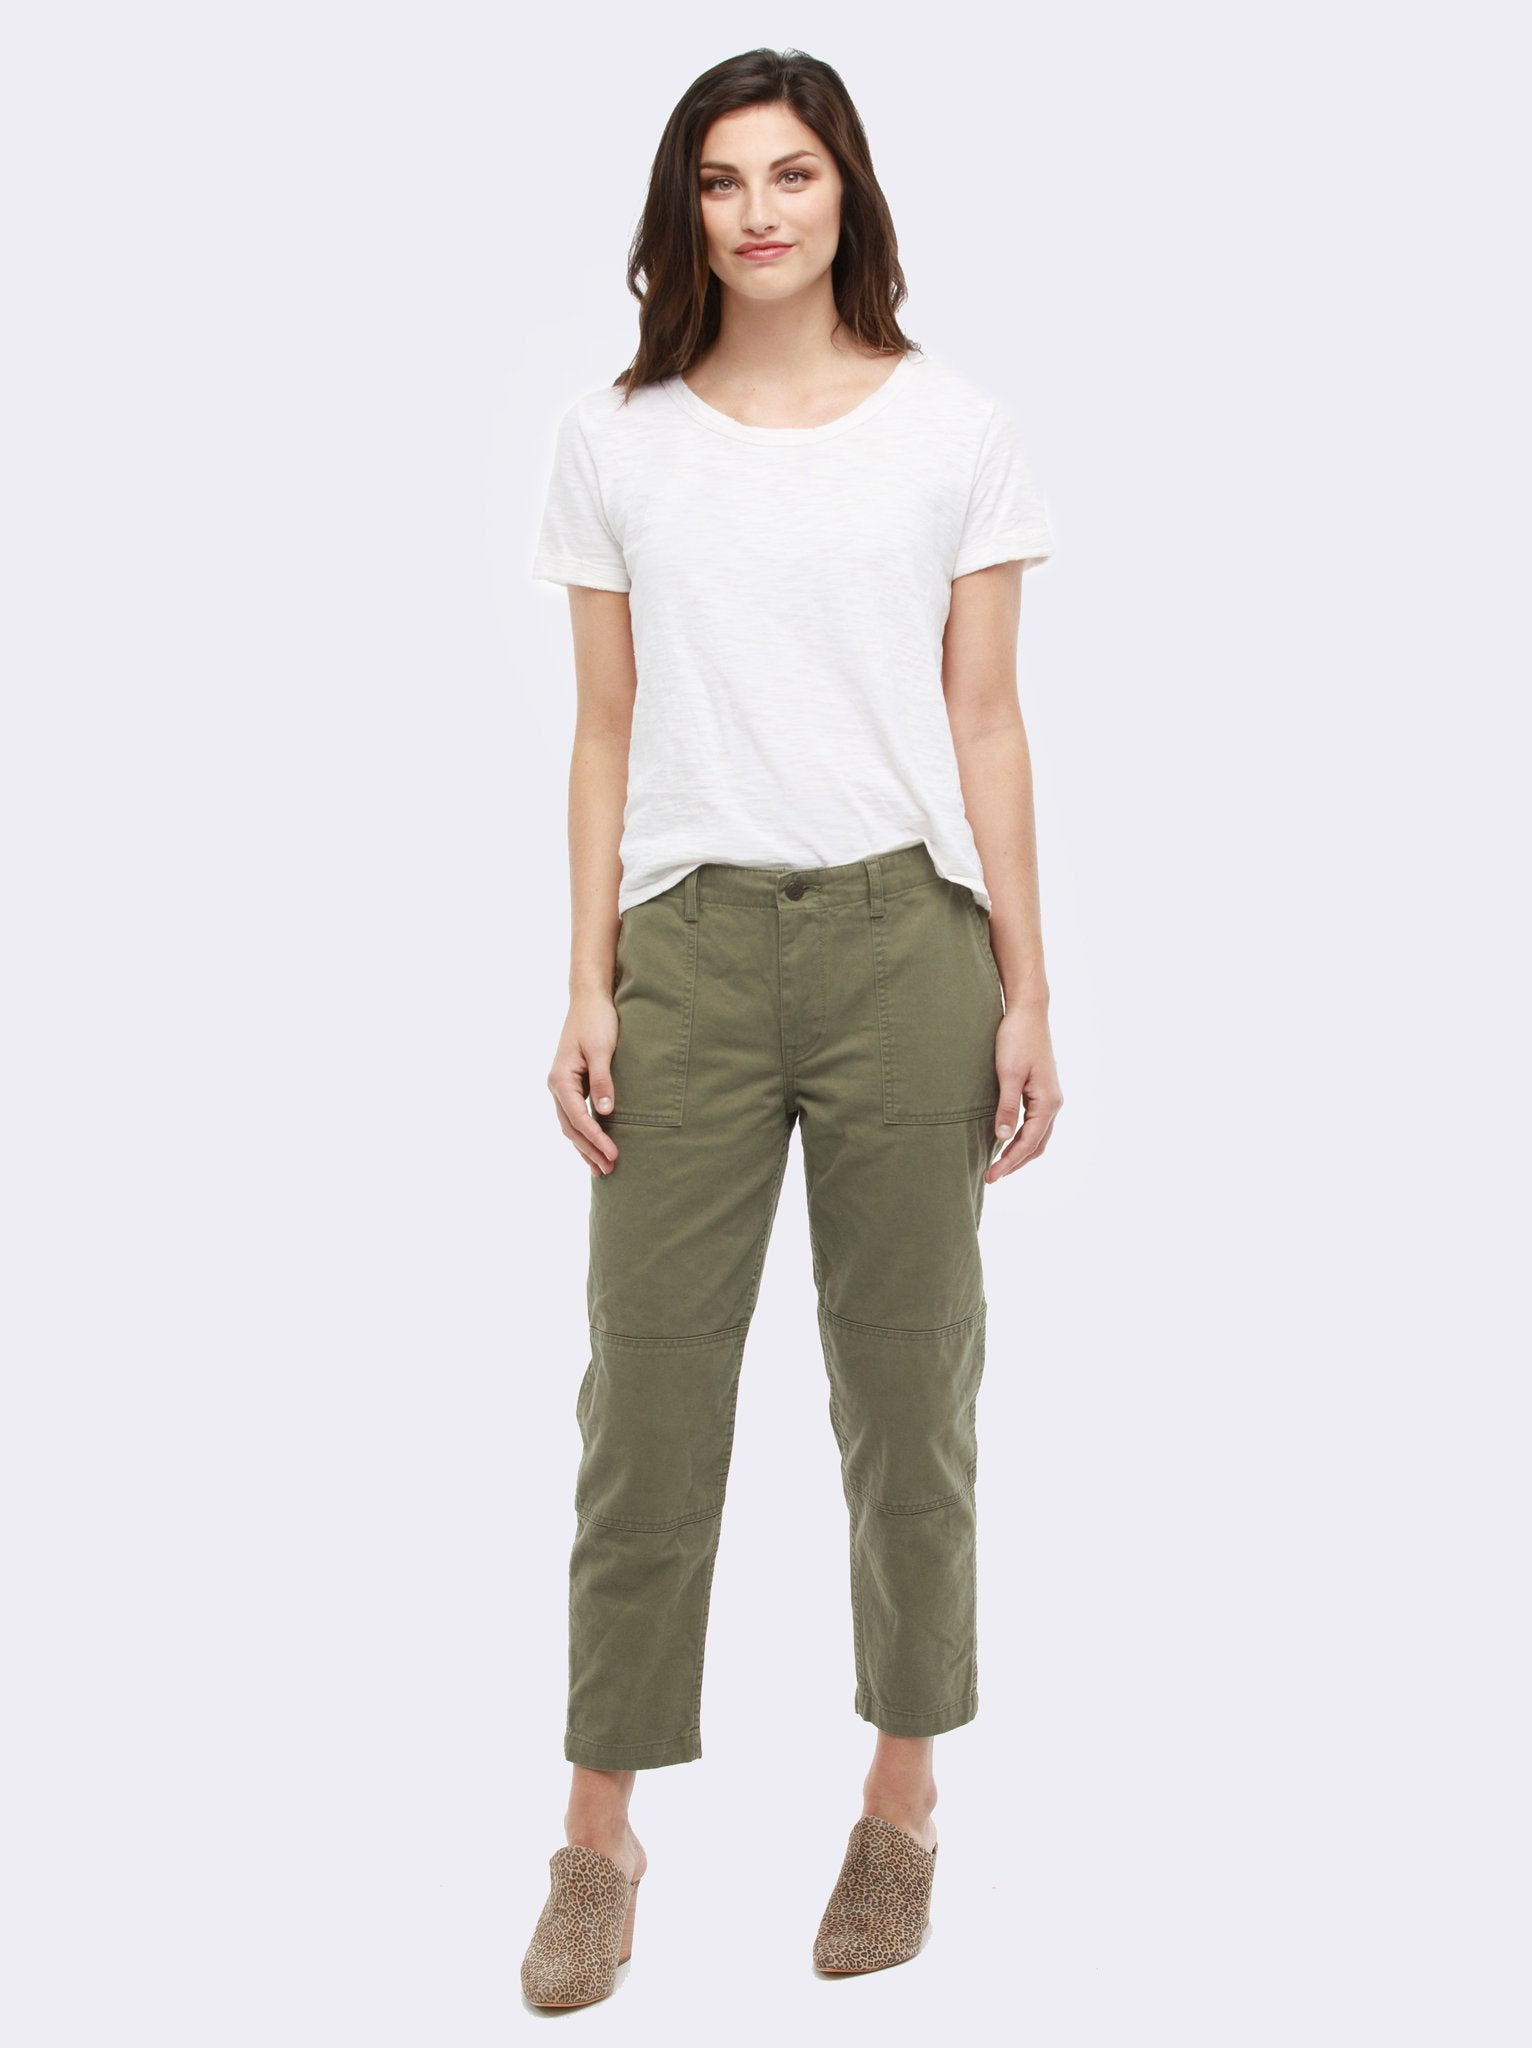 The Sulemy Military Pant